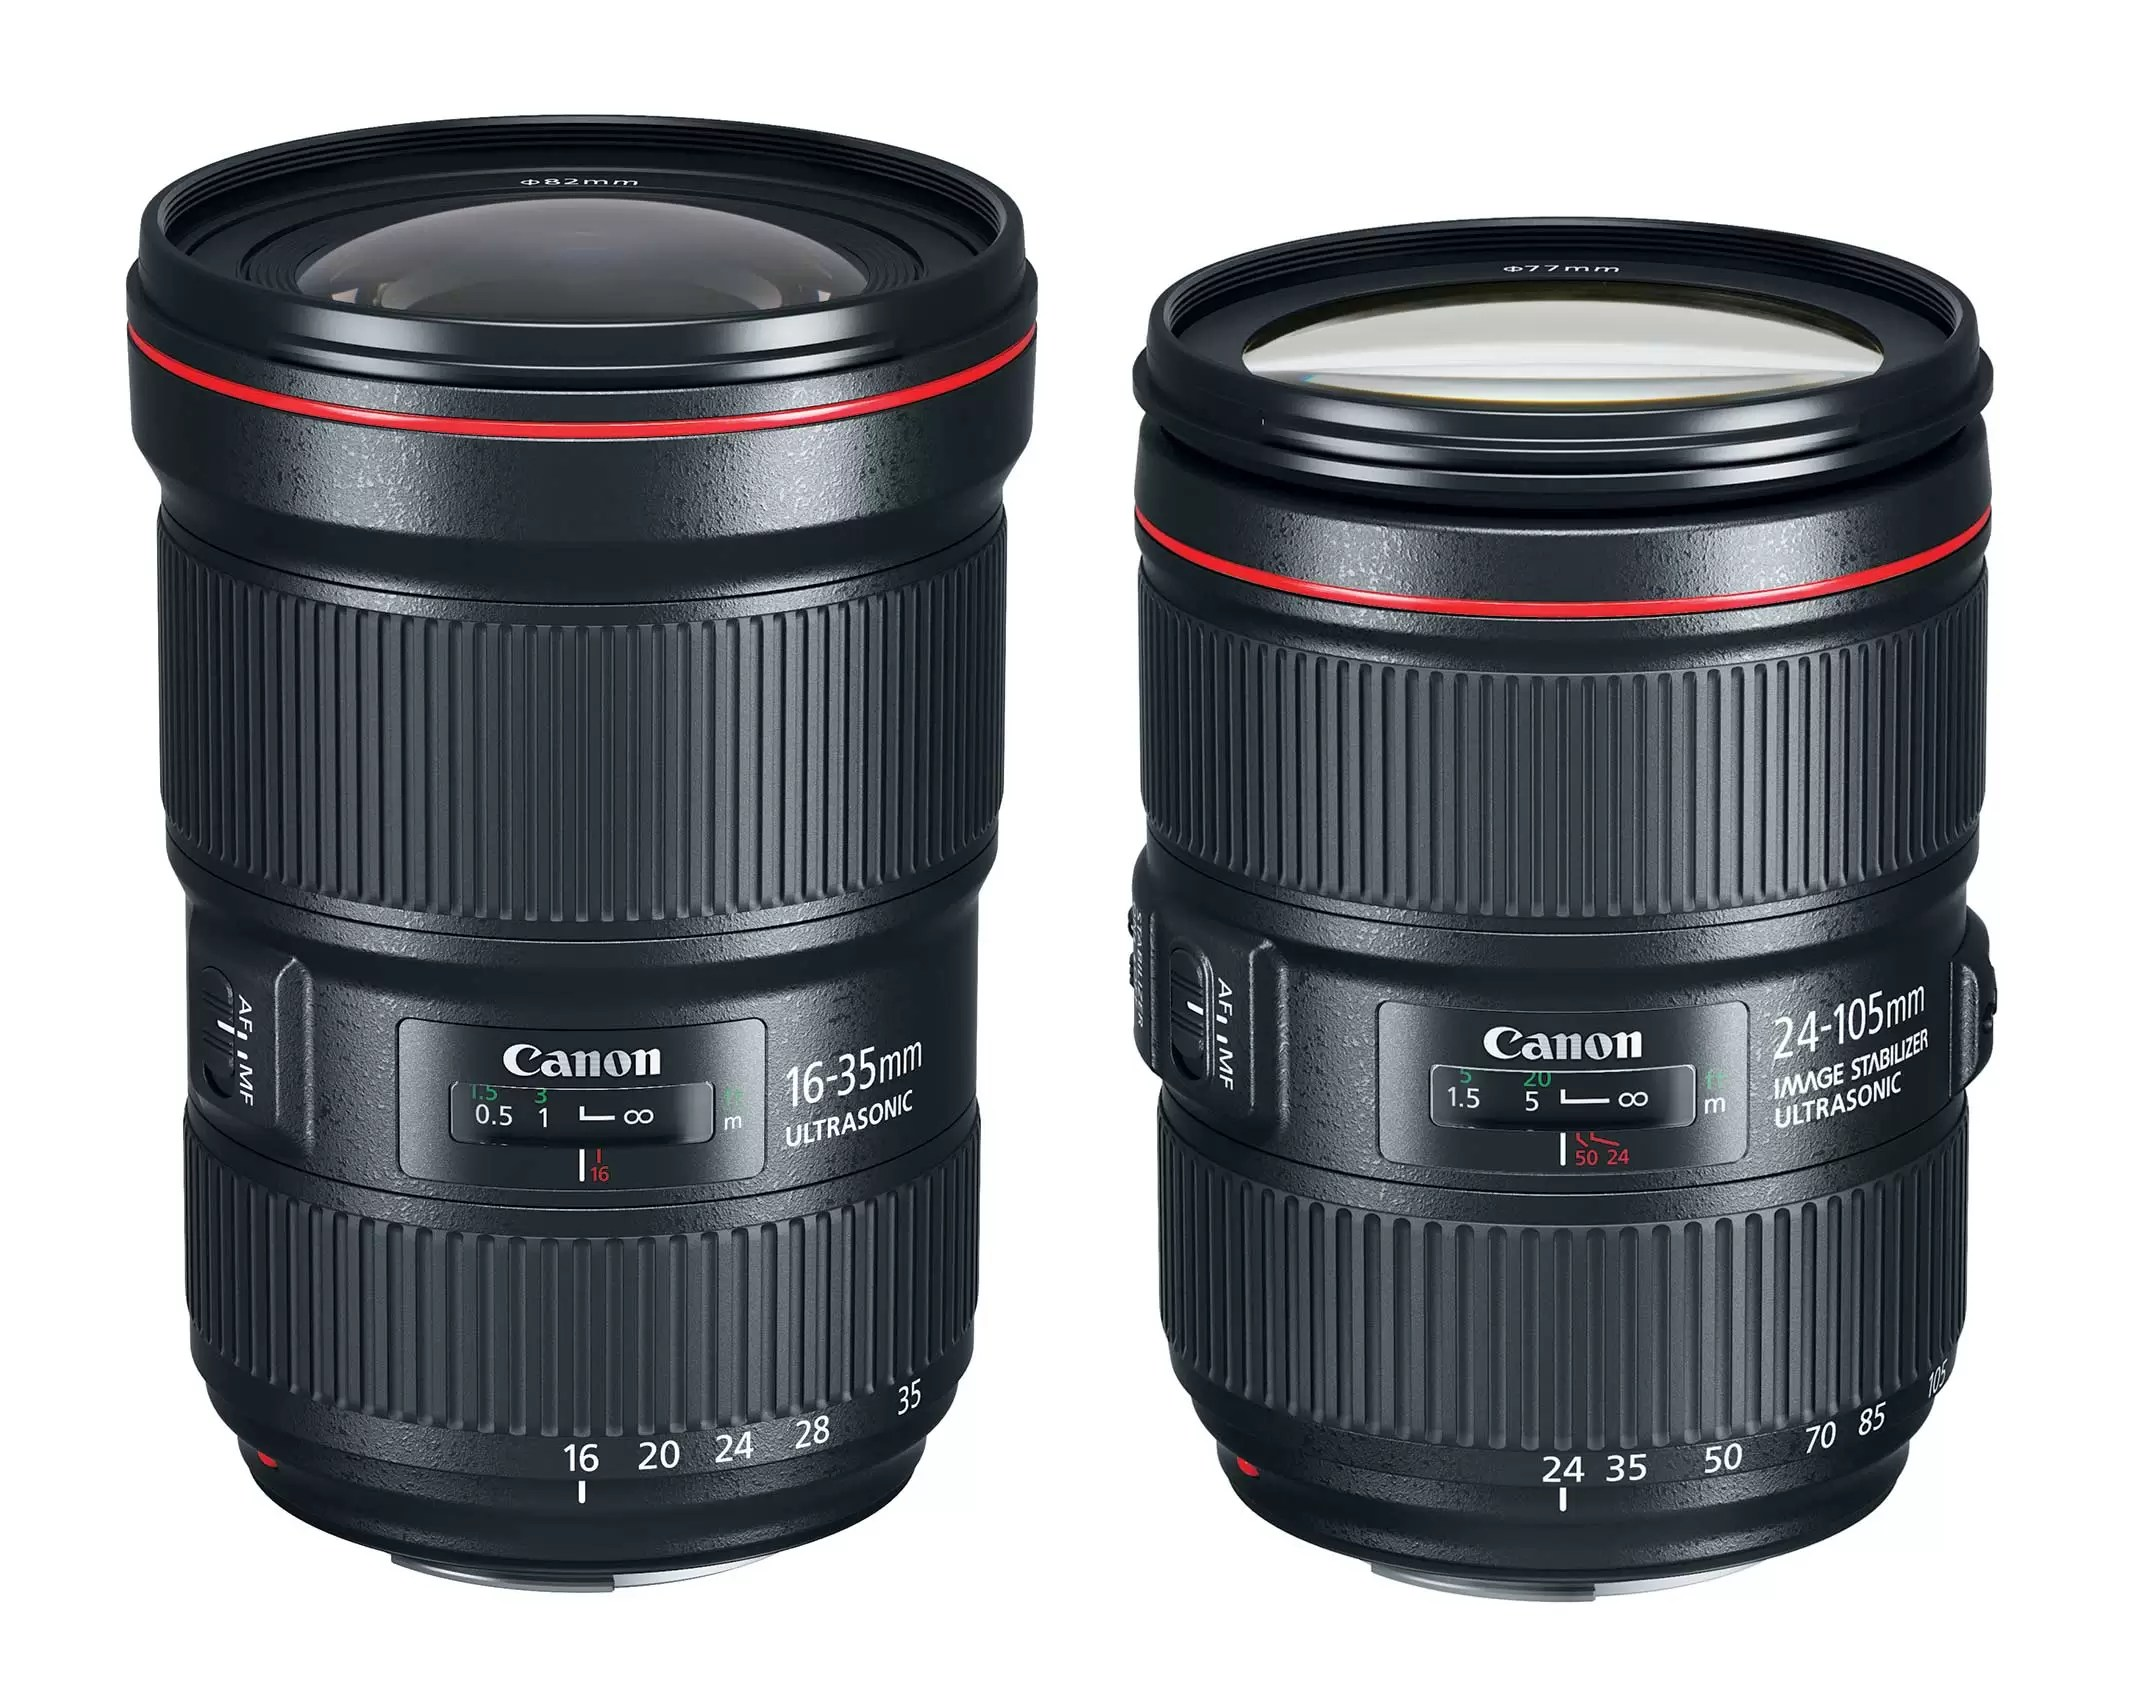 Canon-16-35mm-f2.8-III-and-Canon-24-105mm-f4-IS-II – Light And Matter